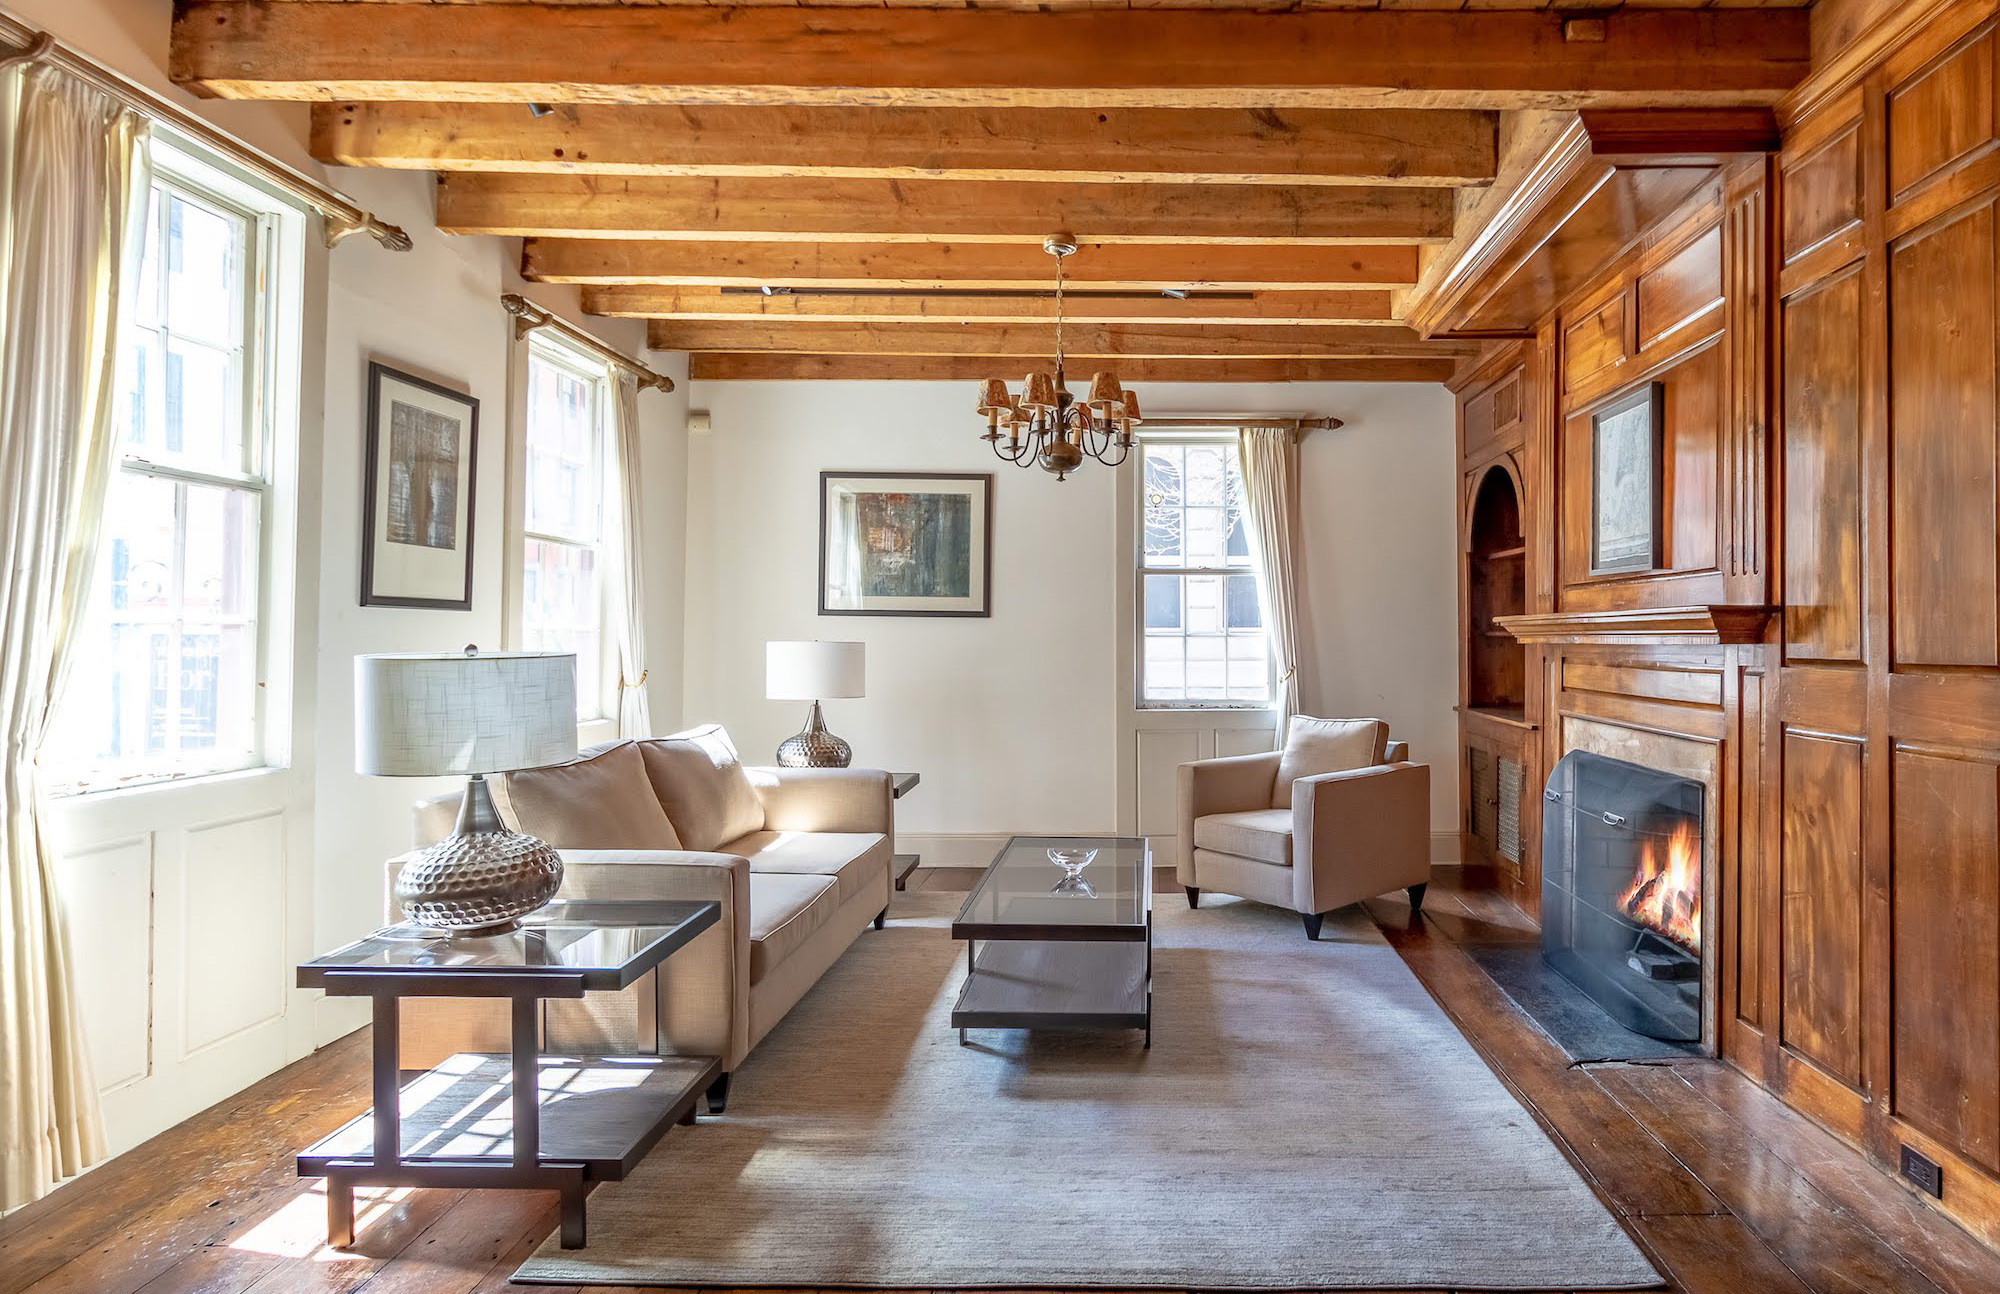 Rare 200-year-old wooden townhouse in Manhattan lists for $12m